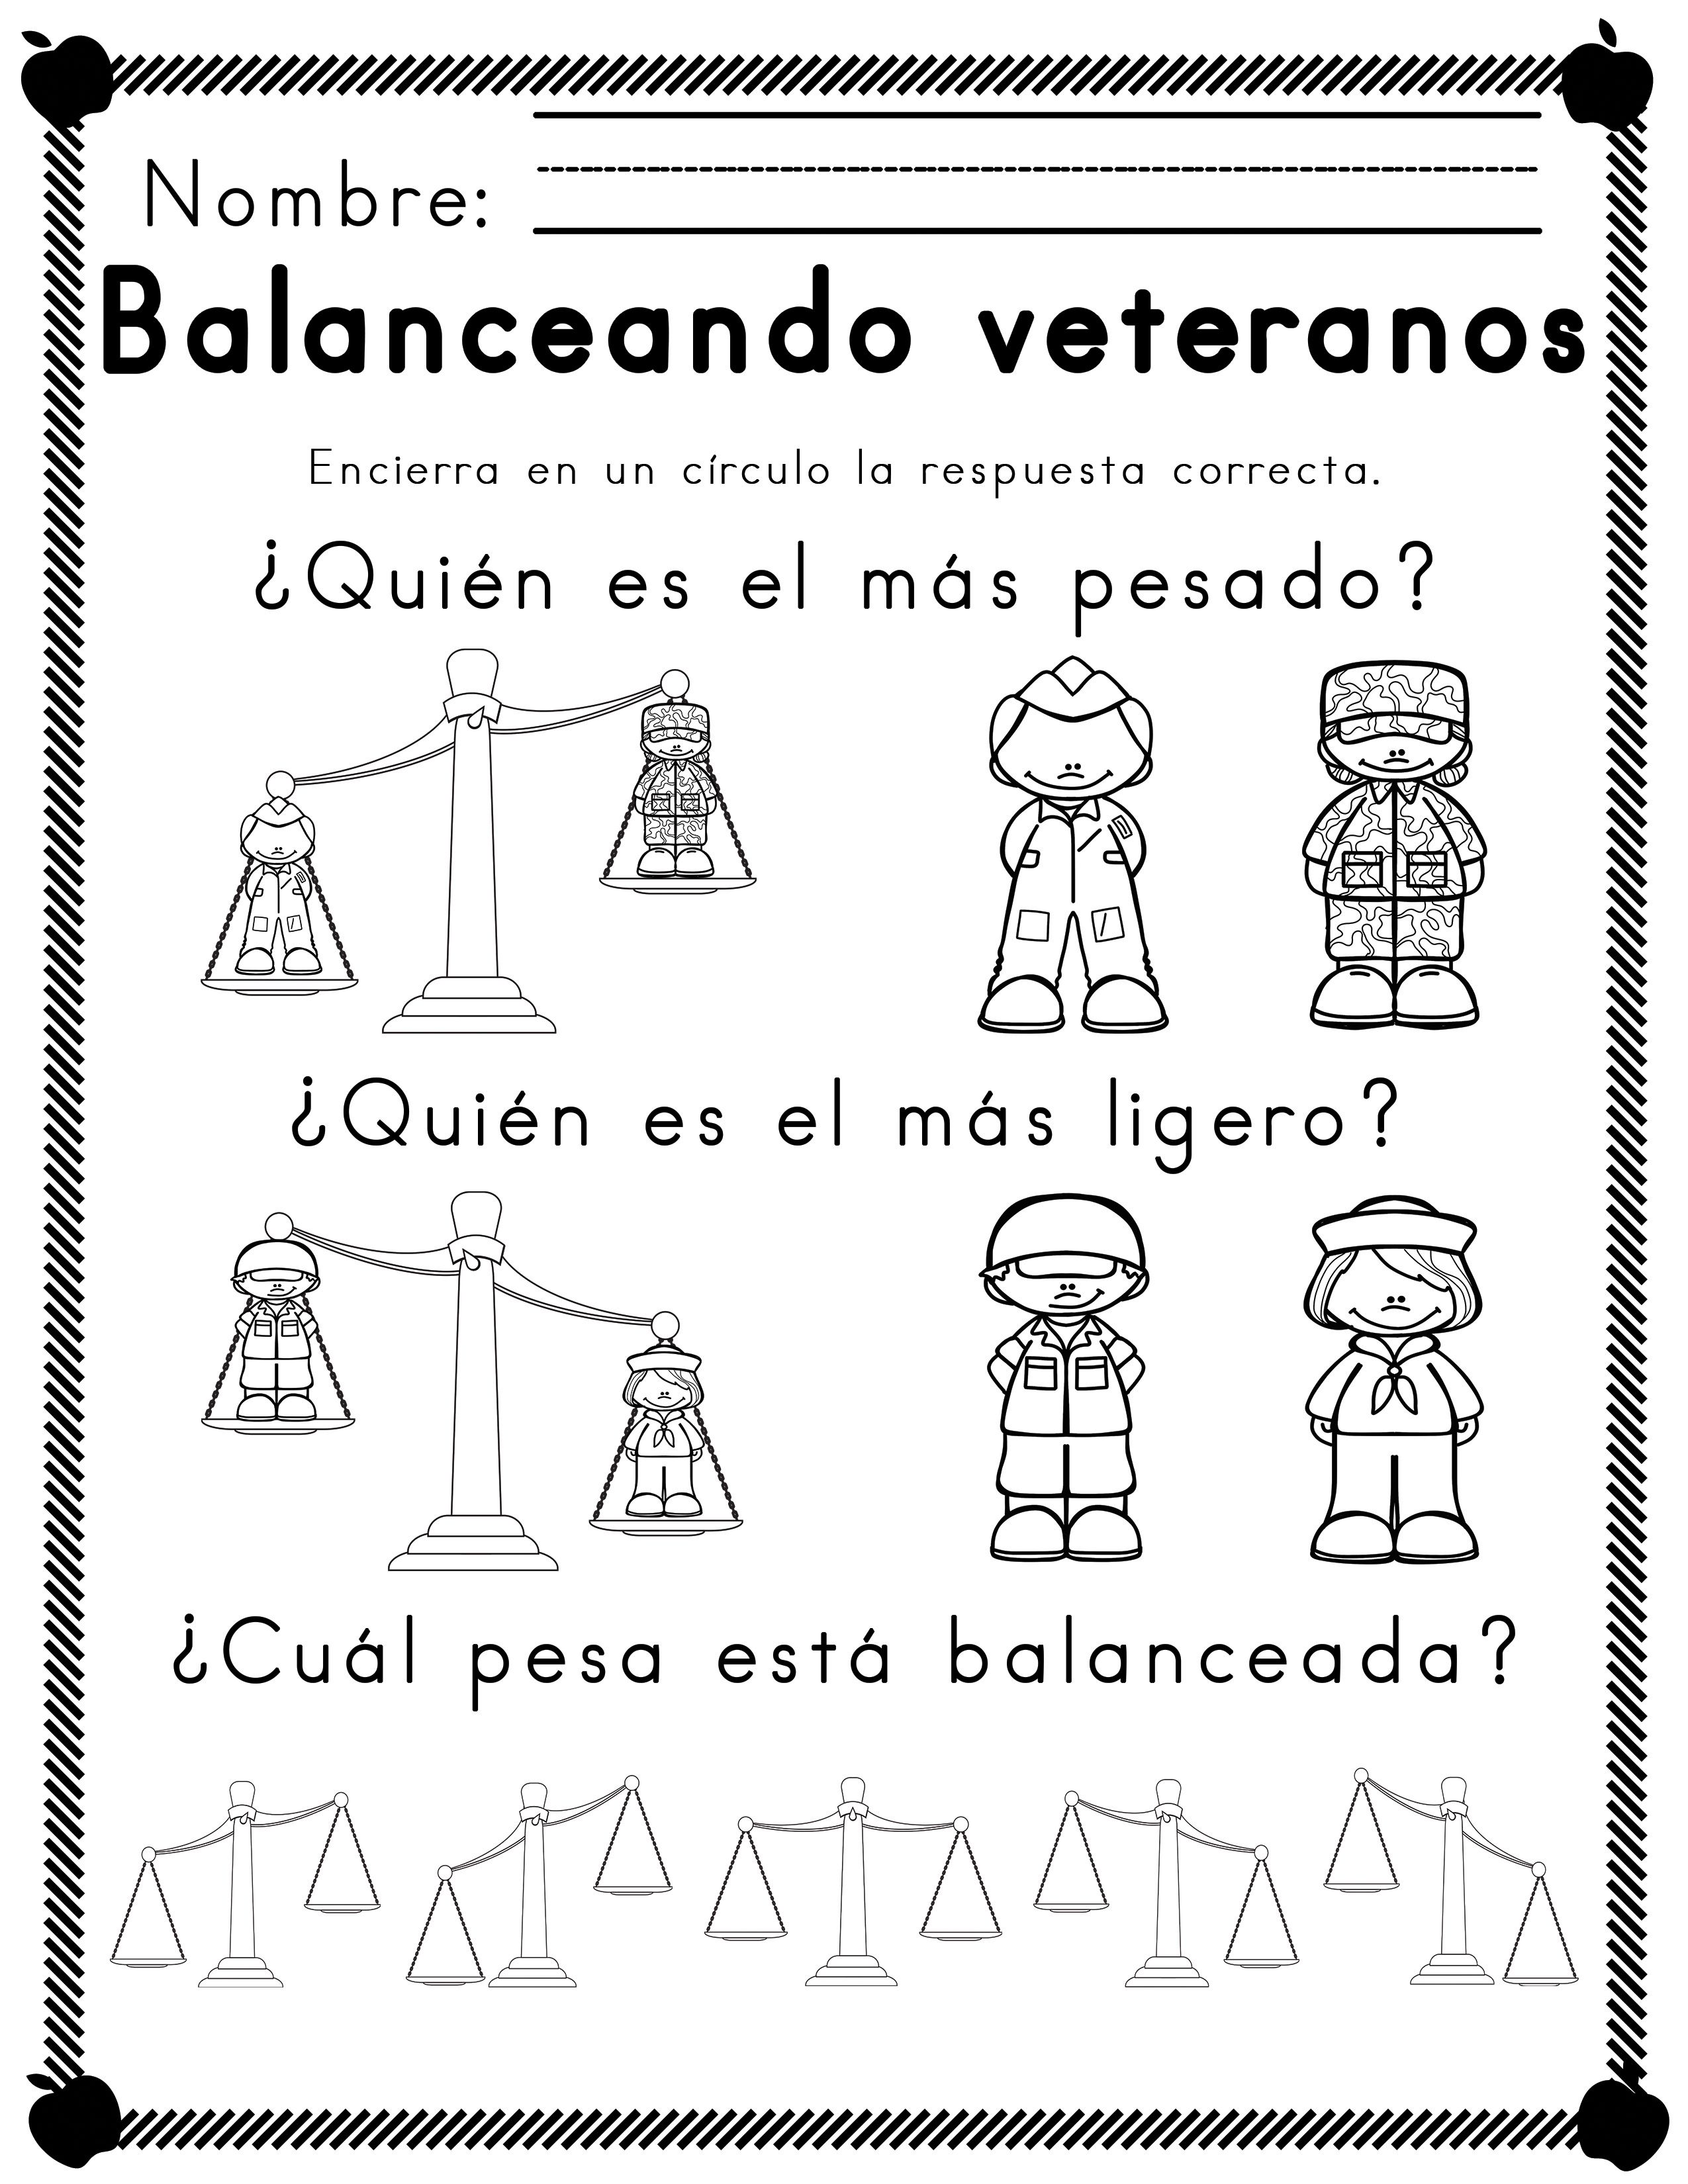 Worksheets For Veterano Tematico Alfabetismo And Mates